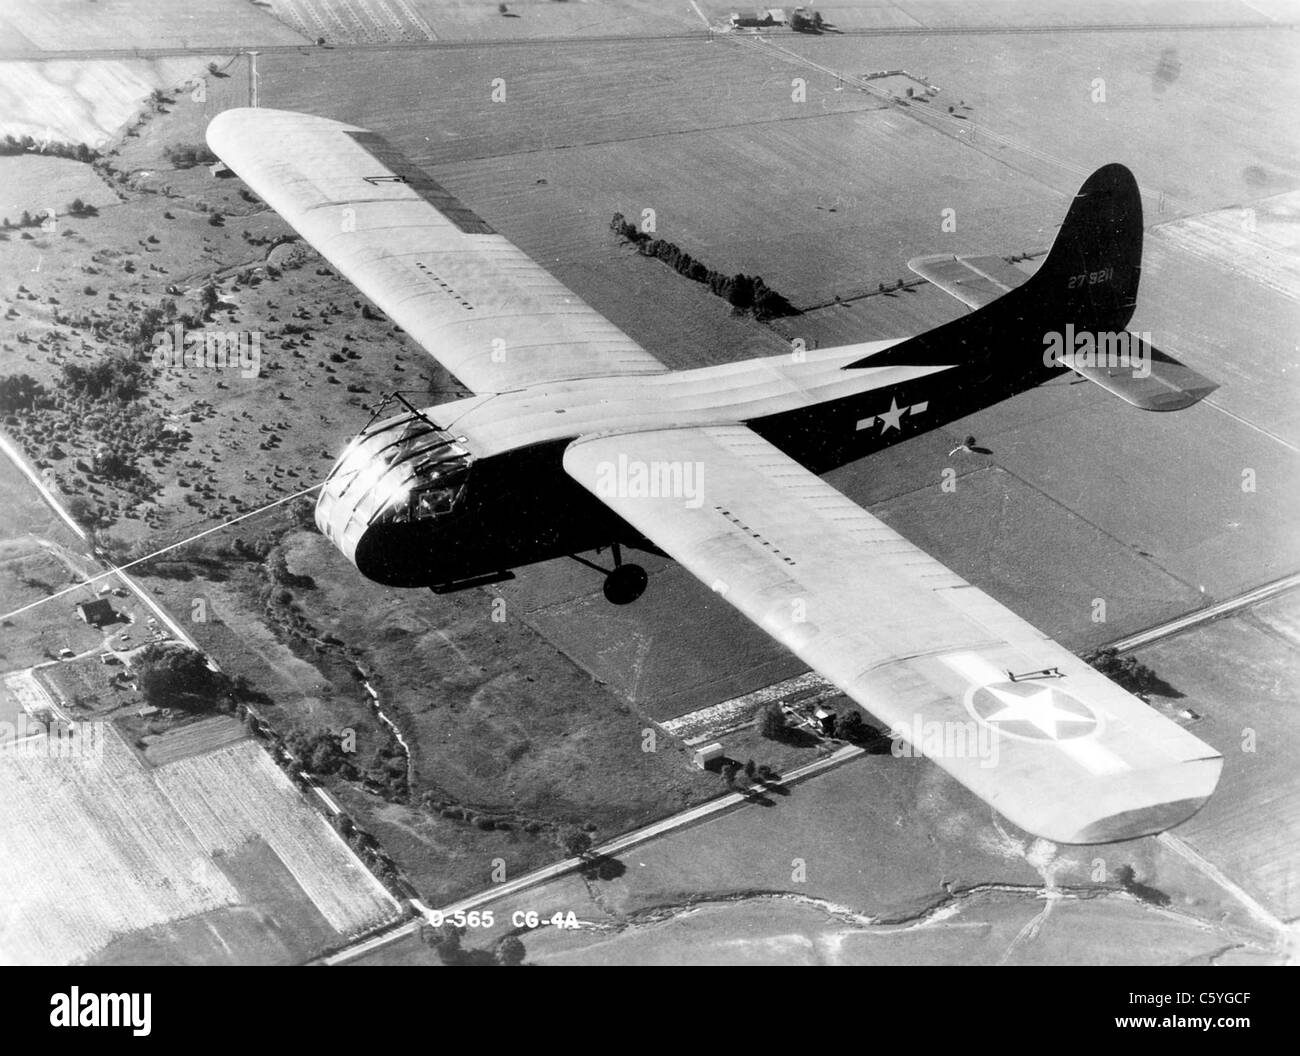 WACO CG-4  US Army Airforce troop and cargo glider widely used in WW2 - Stock Image